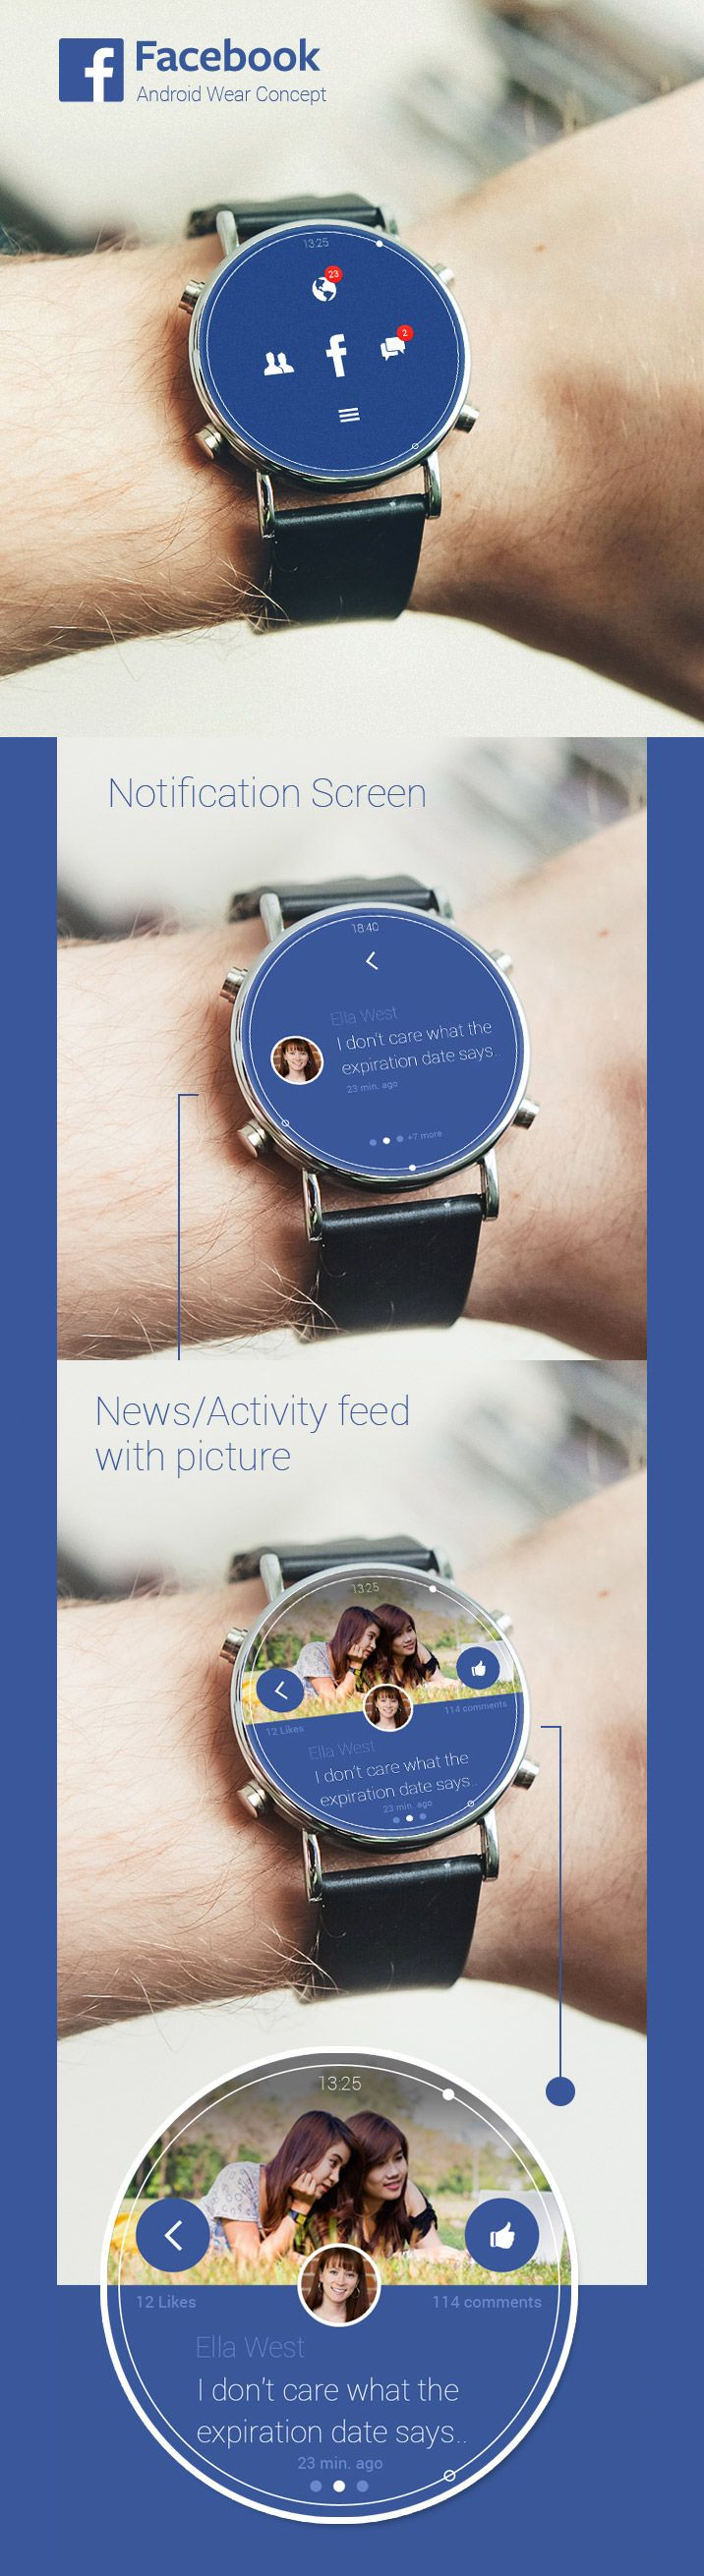 Facebook smartwatch UI http://www.cssdesignawards.com/articles/23-smartwatch-ui-designs-concepts/114/